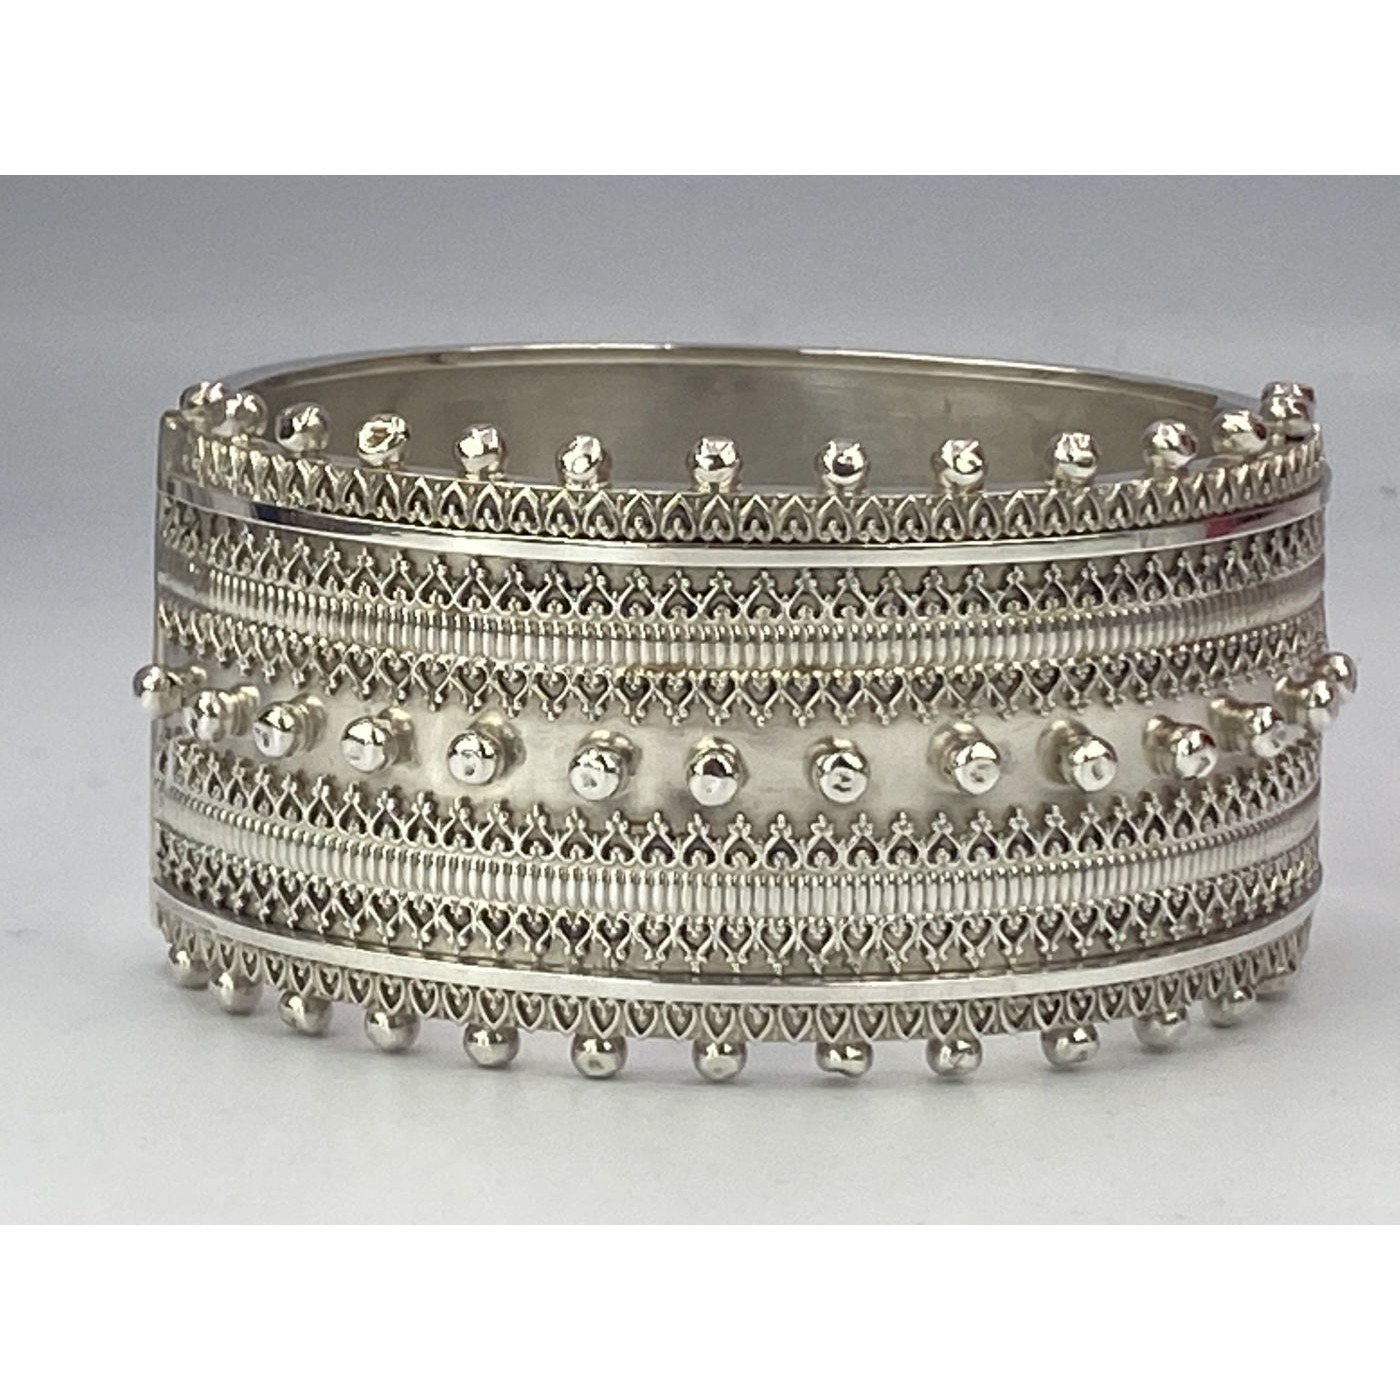 Larger English Silver Bangle with Beading and Wirework